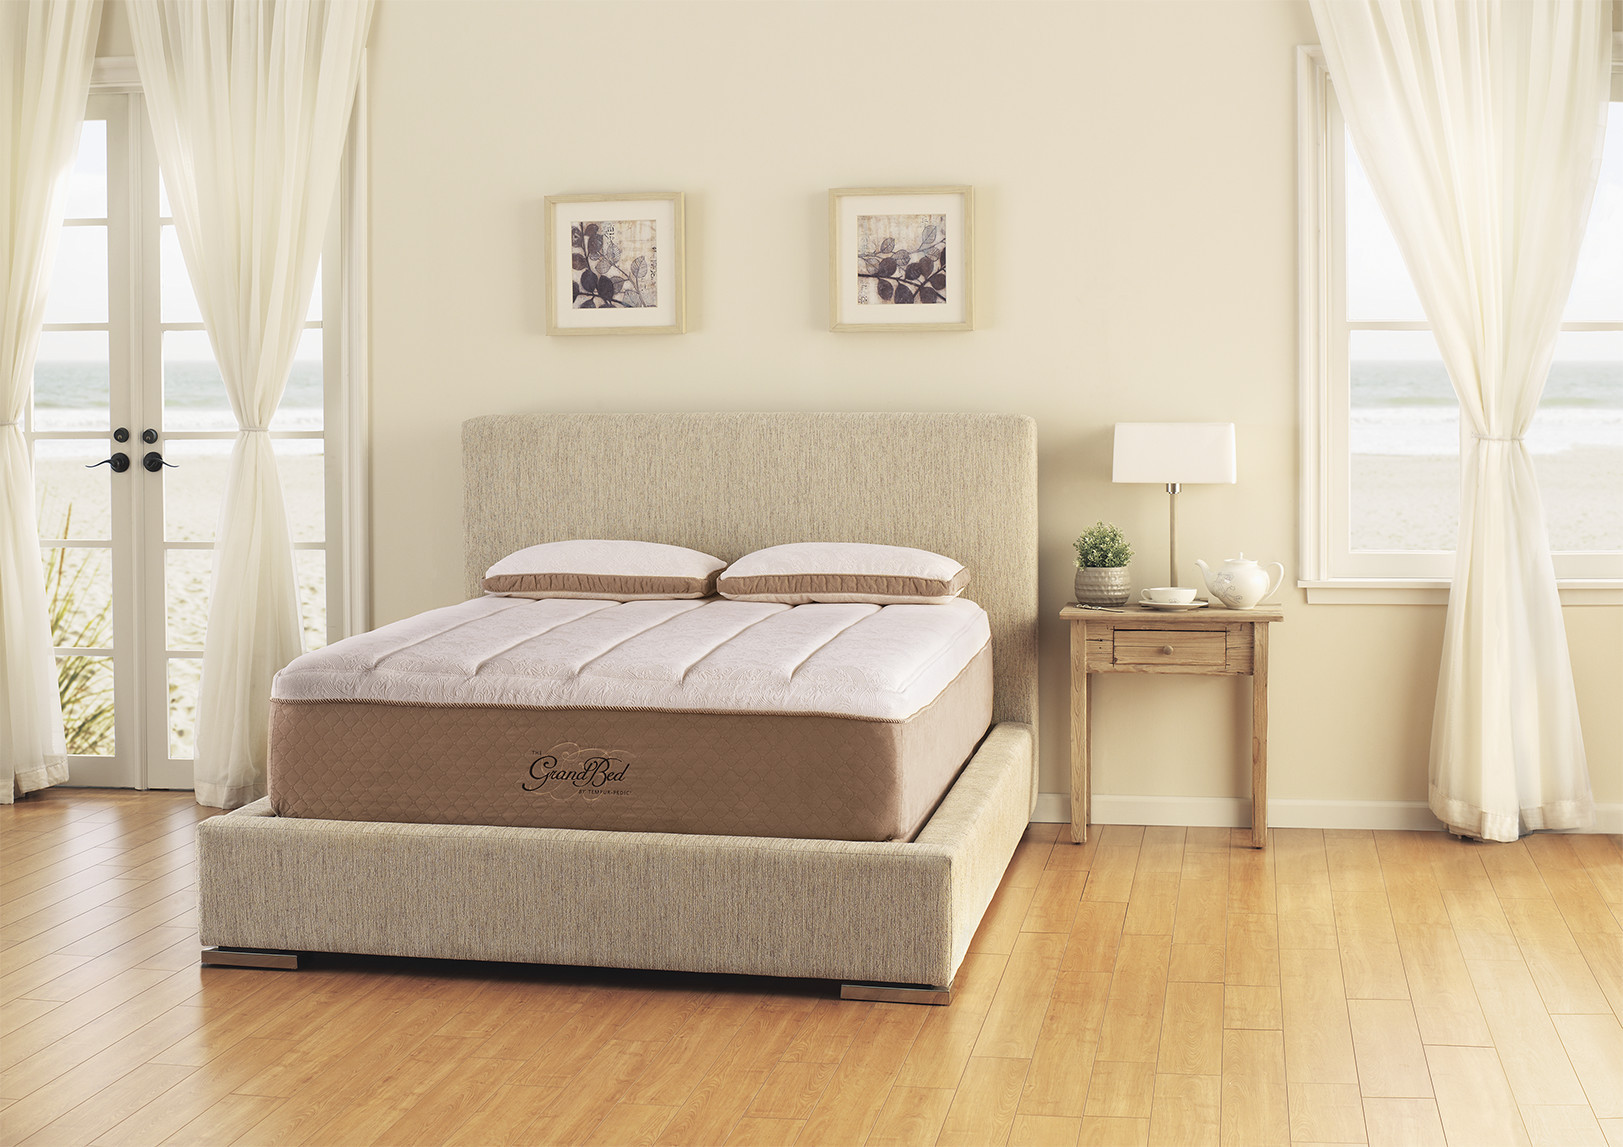 Tempurpedic Mattress Reviews >> GrandBed by Tempur-Pedic | Tempur-Pedic